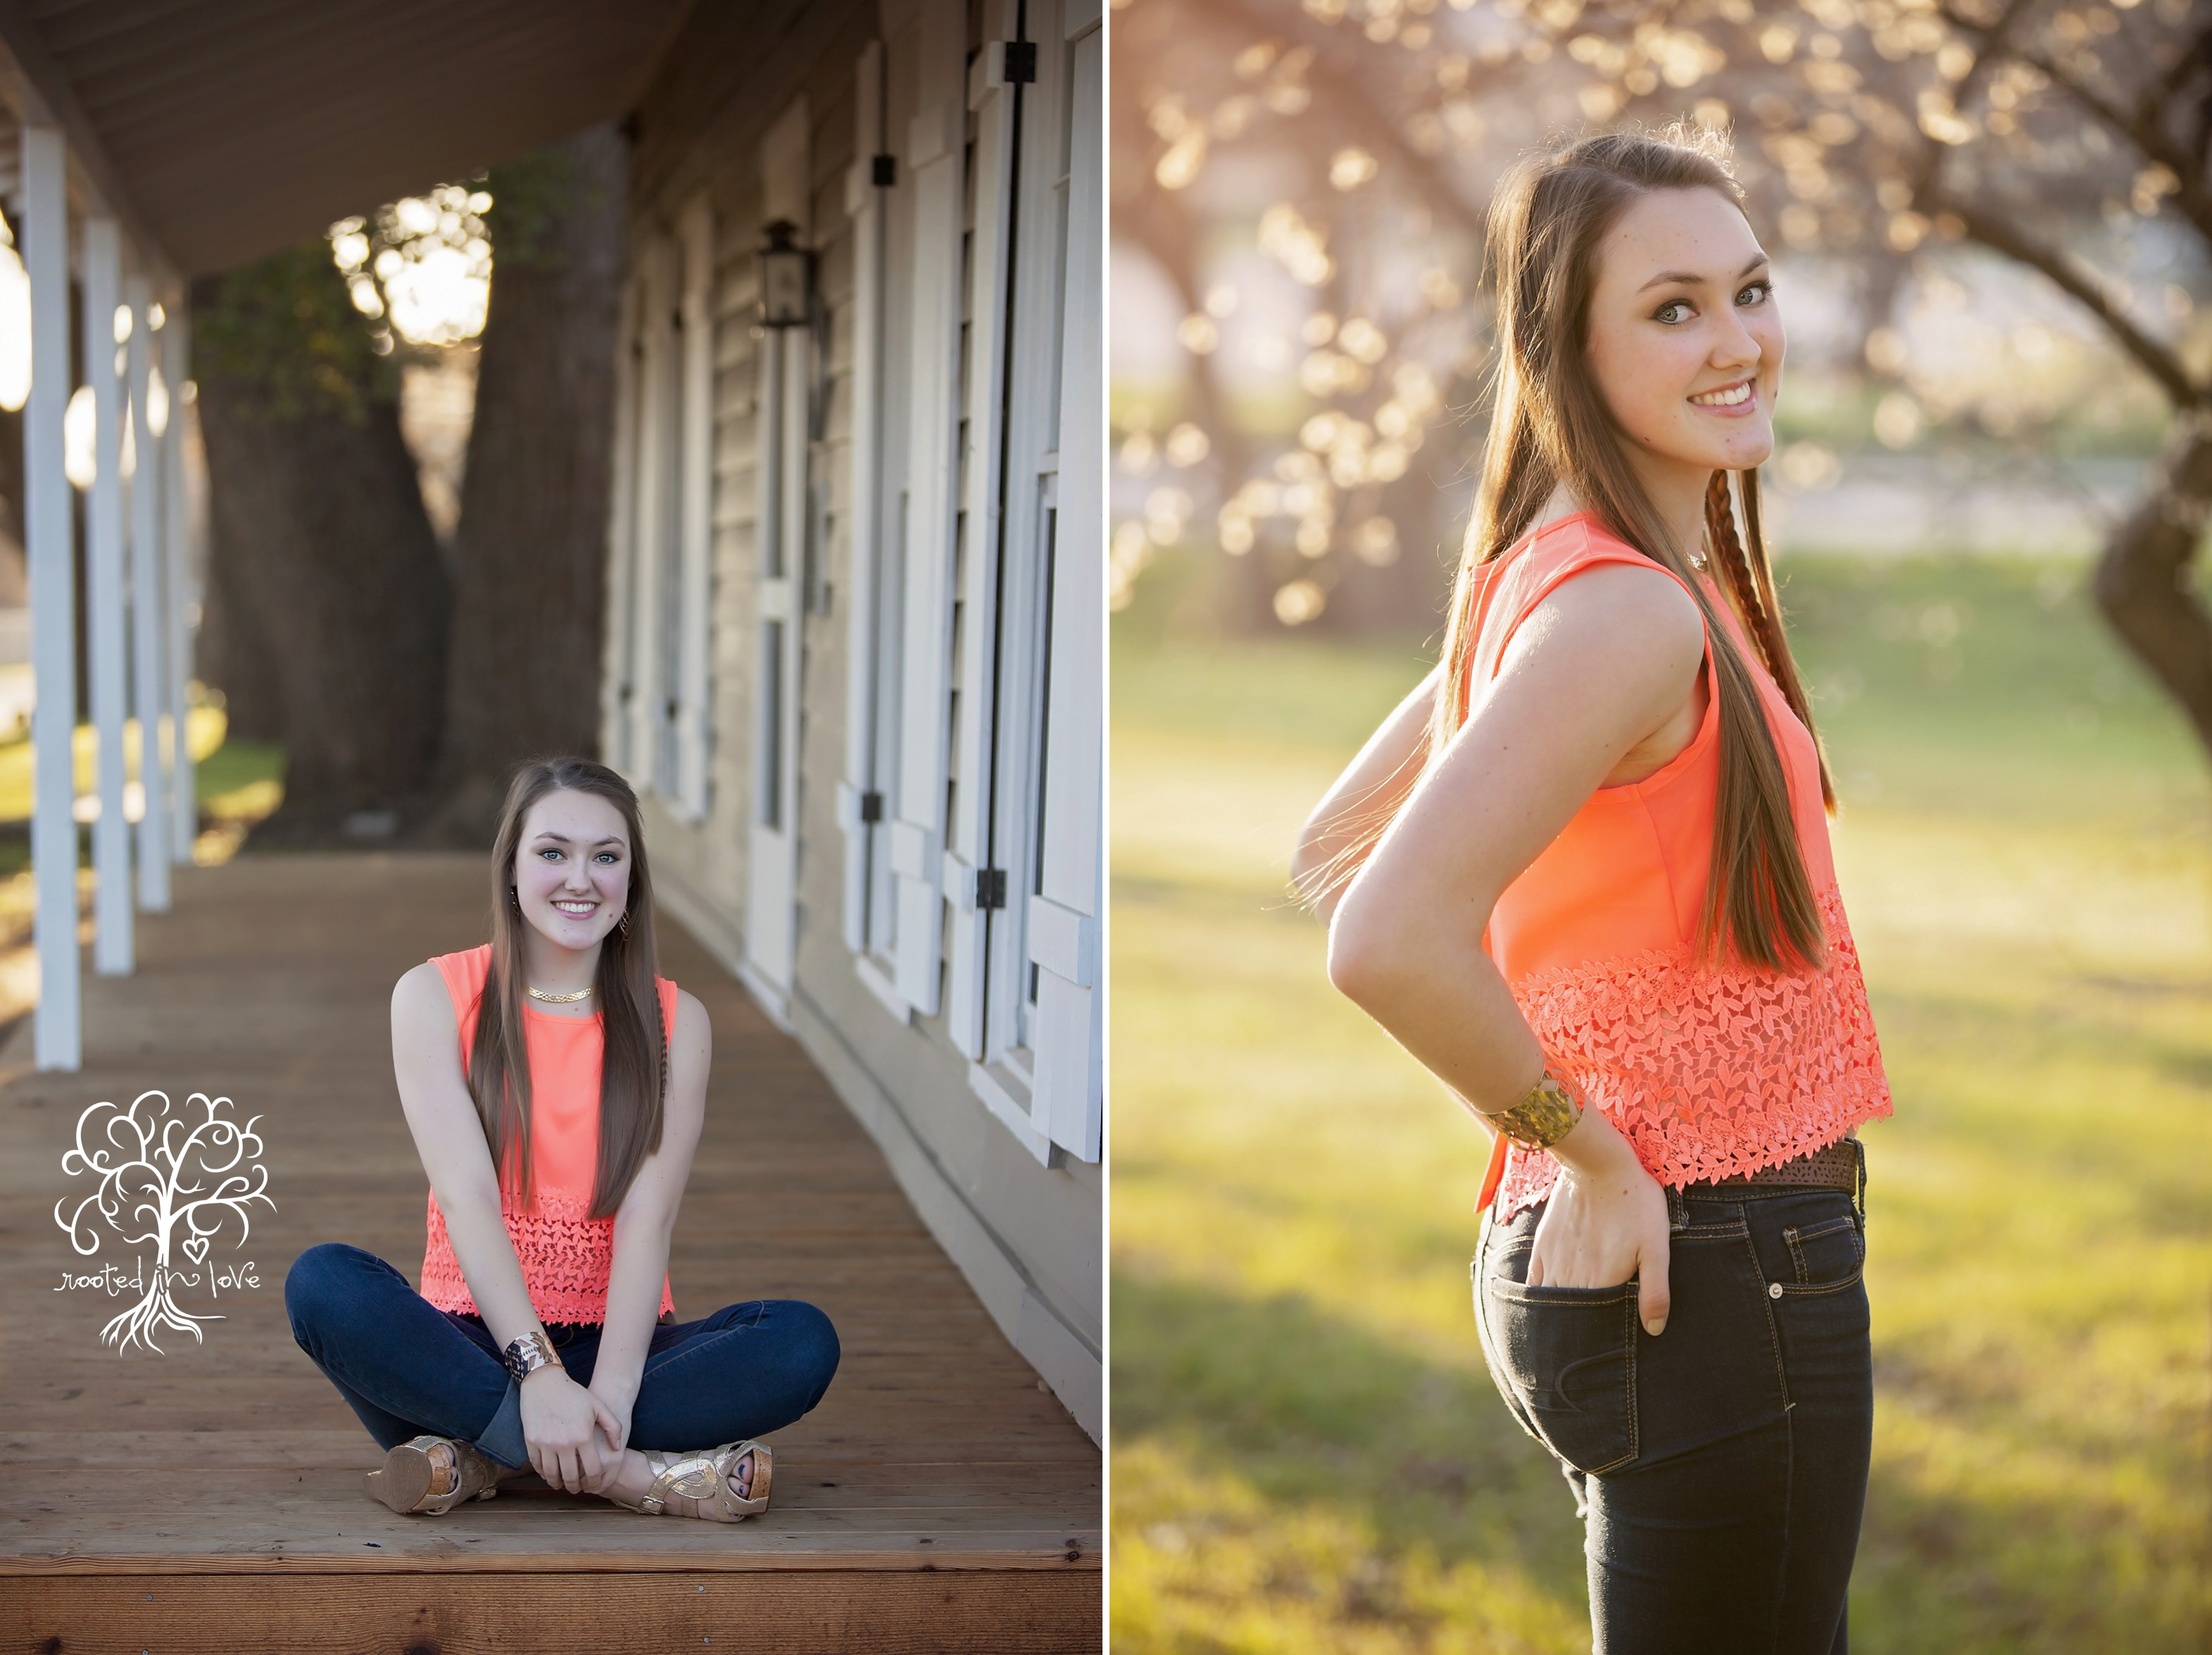 Introducing 2016 senior reps | Fort Worth senior photographer